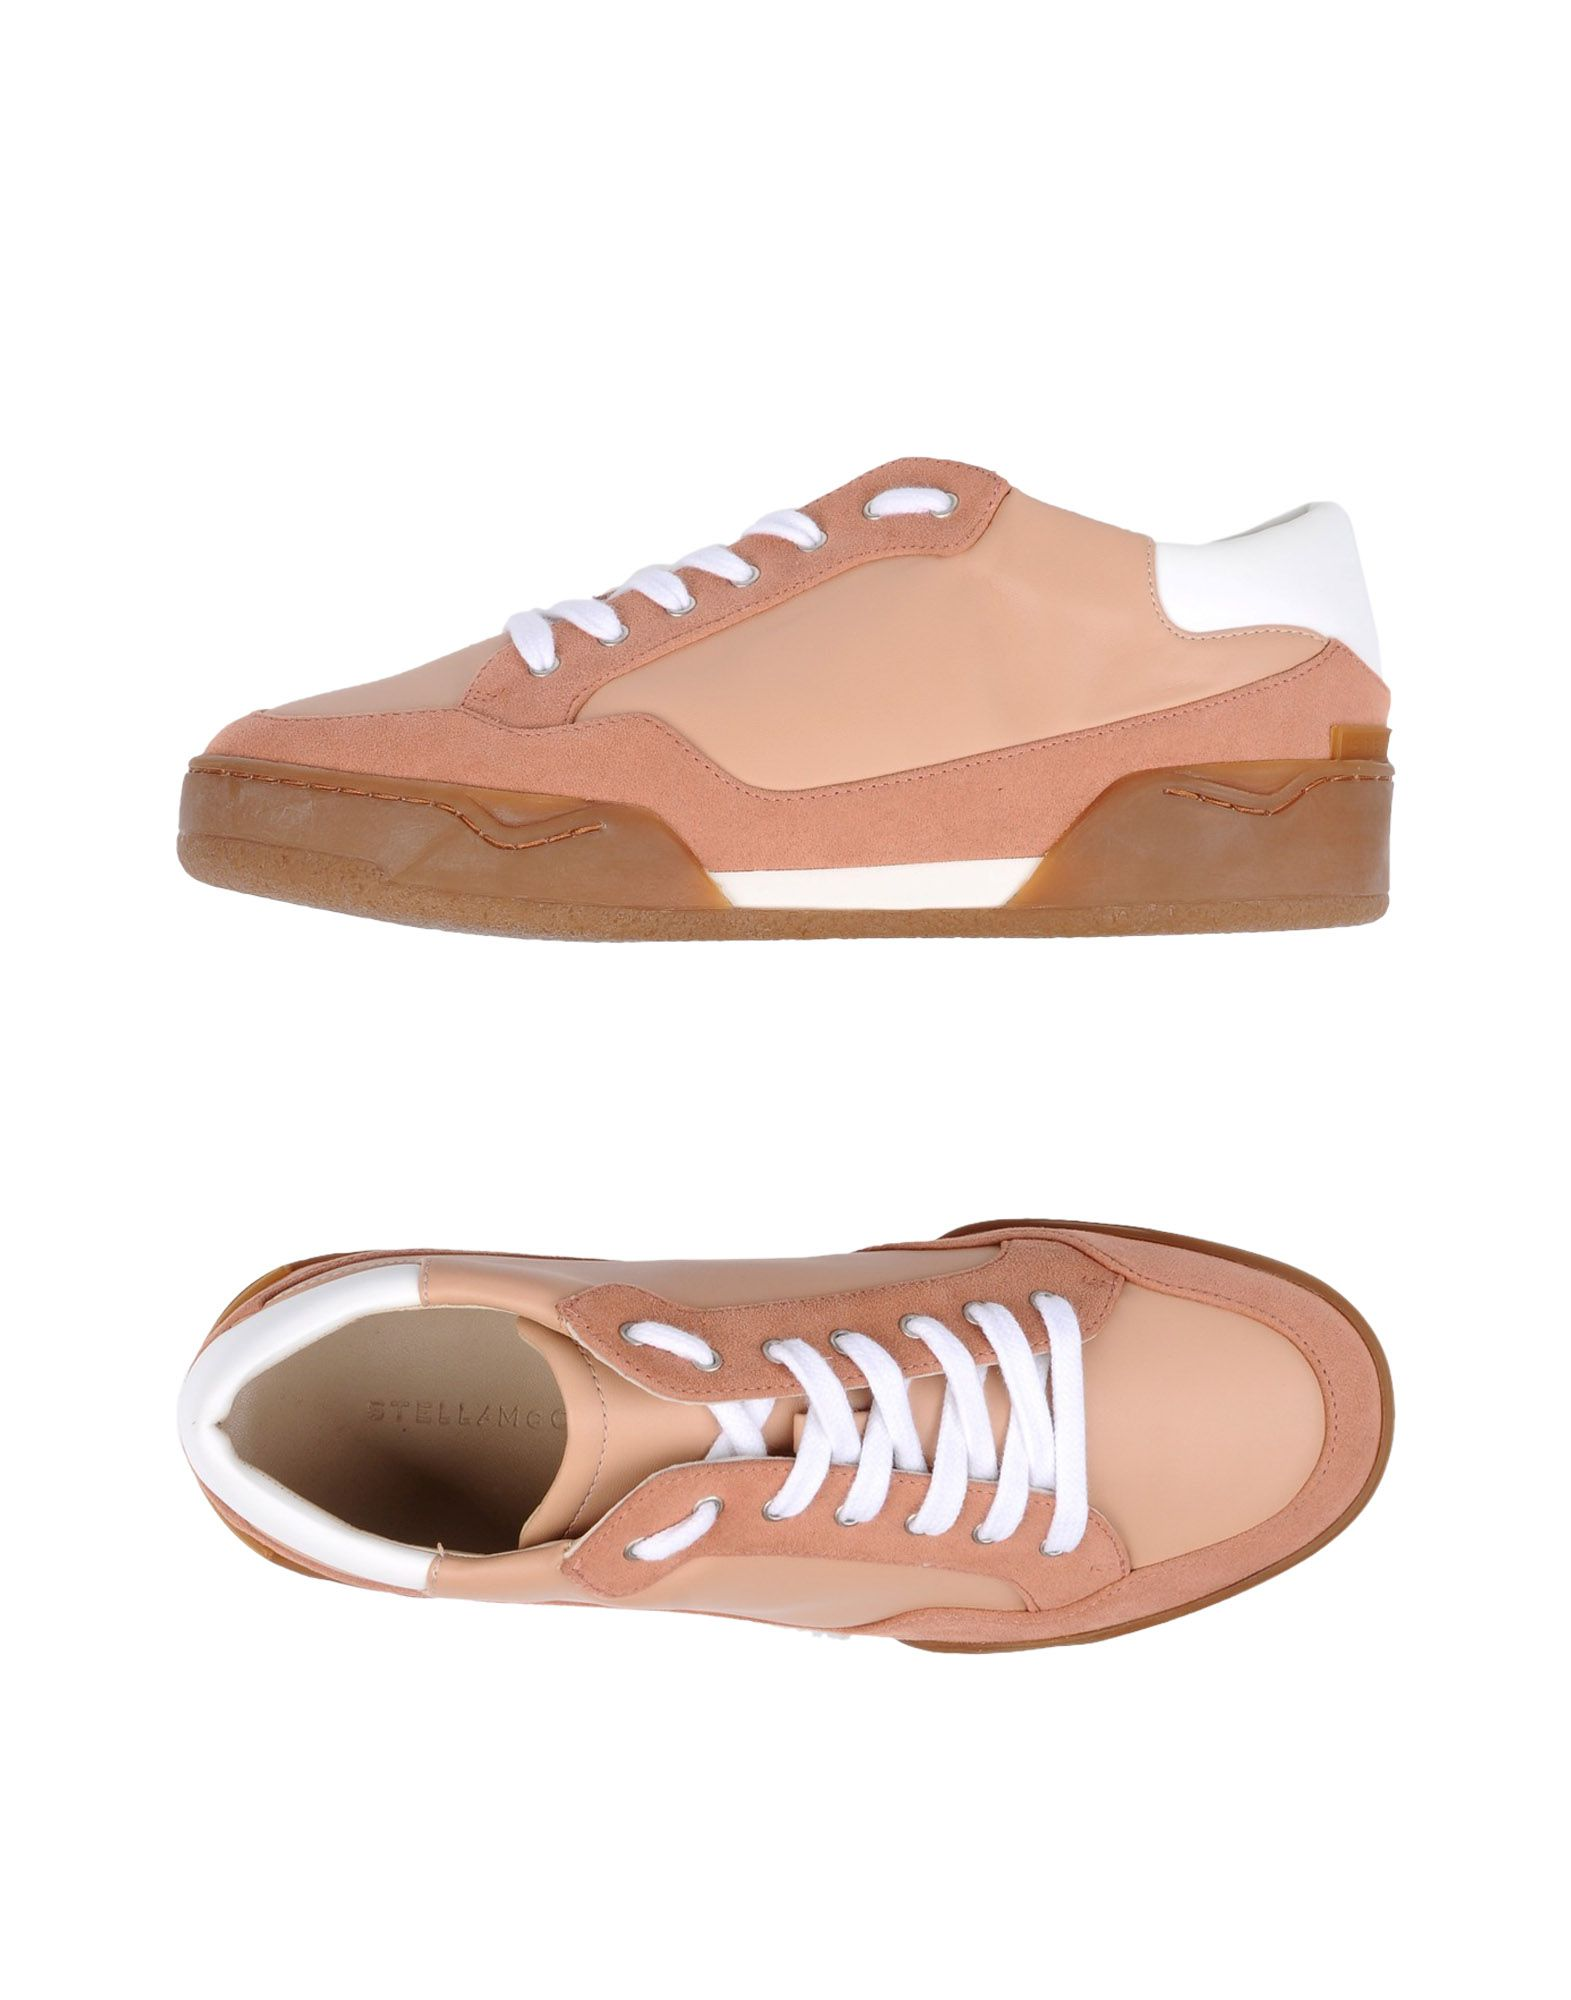 Stella Mccartney Laced shoes